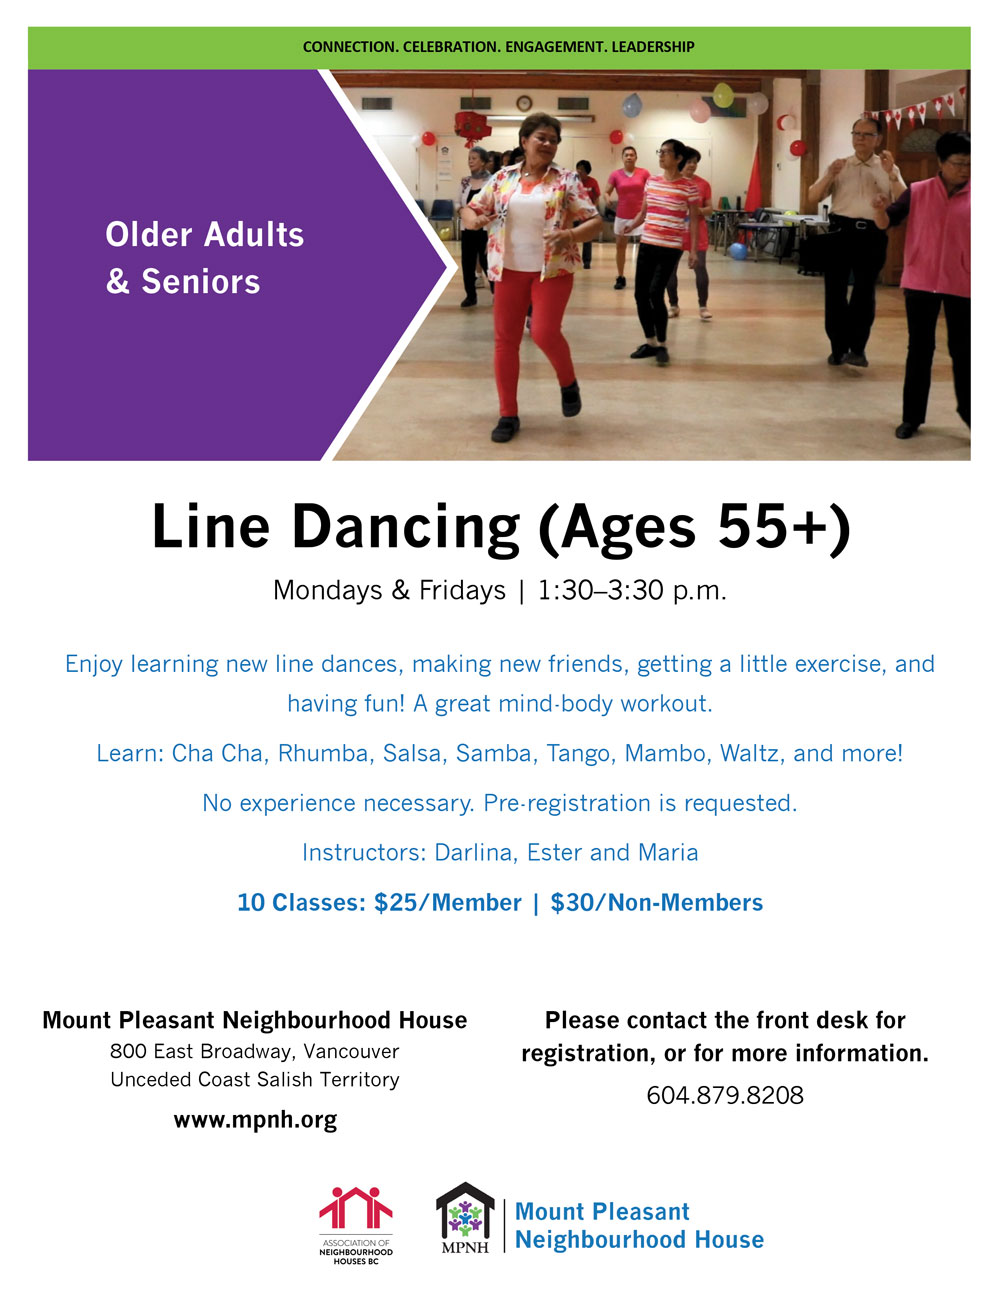 An image of the poster with program details, featuring a photo of seniors line dancing together